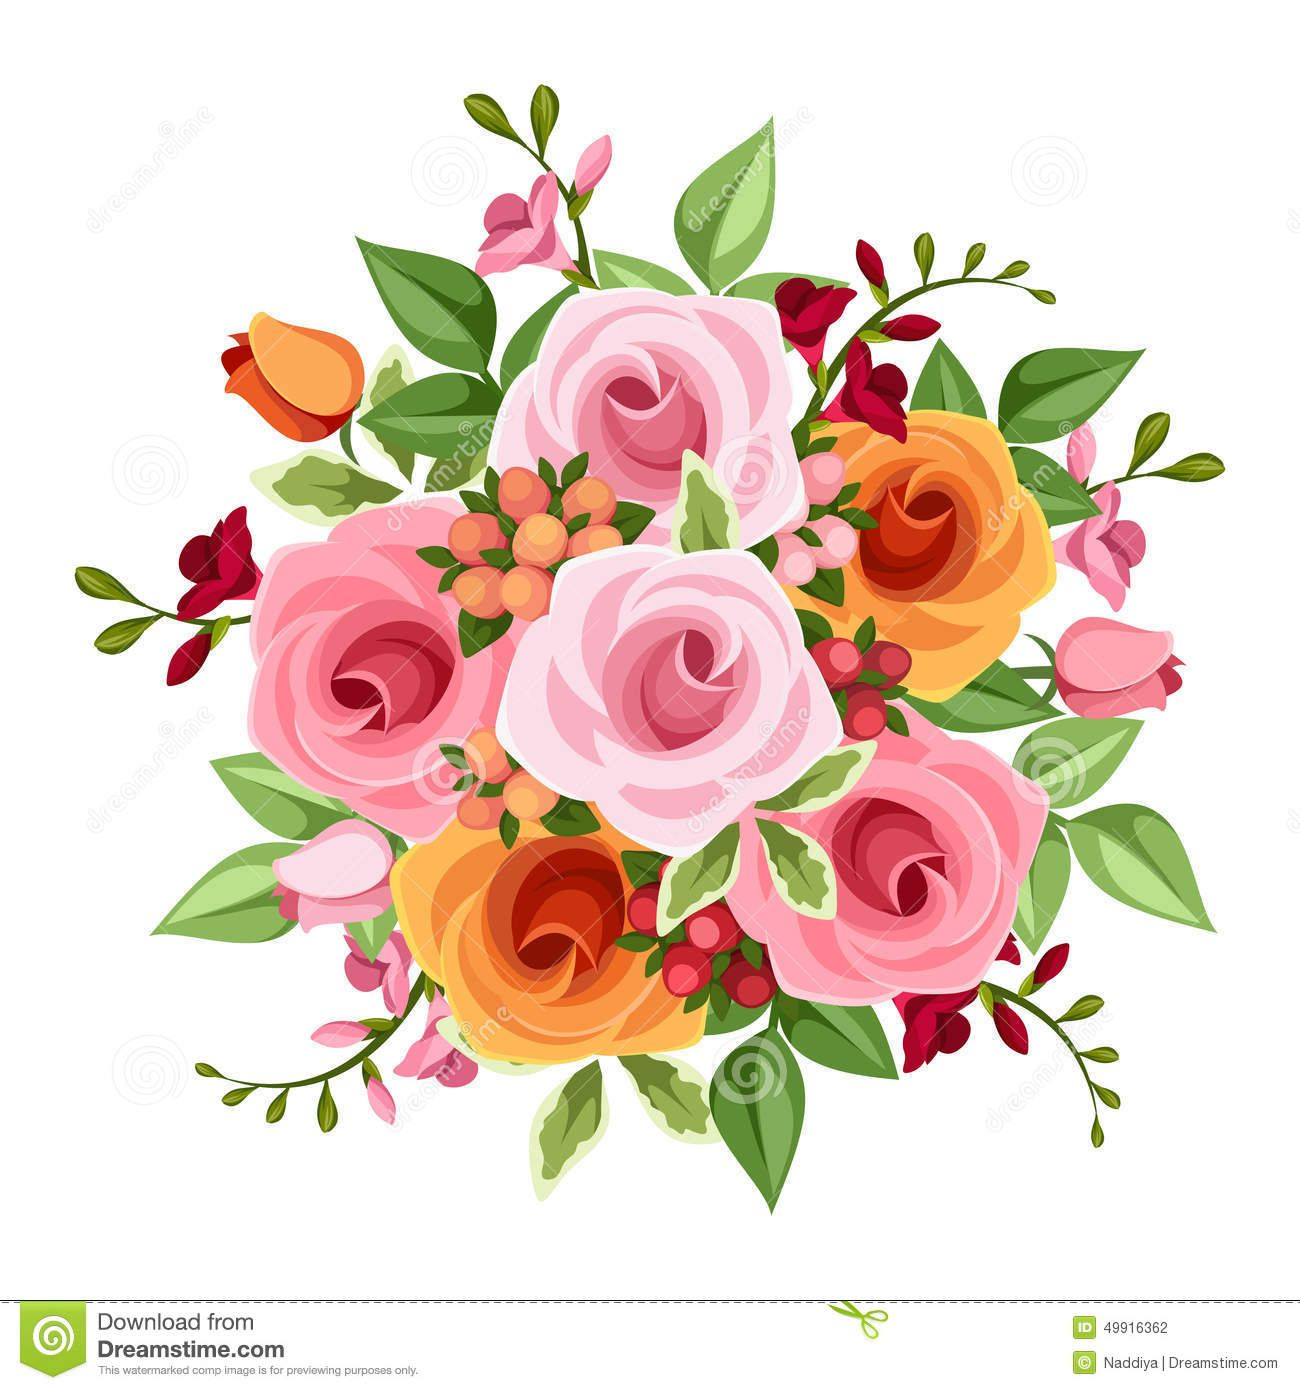 Bouquet roses freesia flowers vector illustration pink orange green photo about vector bouquet of pink and orange roses and freesia flowers and green leaves on a white background izmirmasajfo